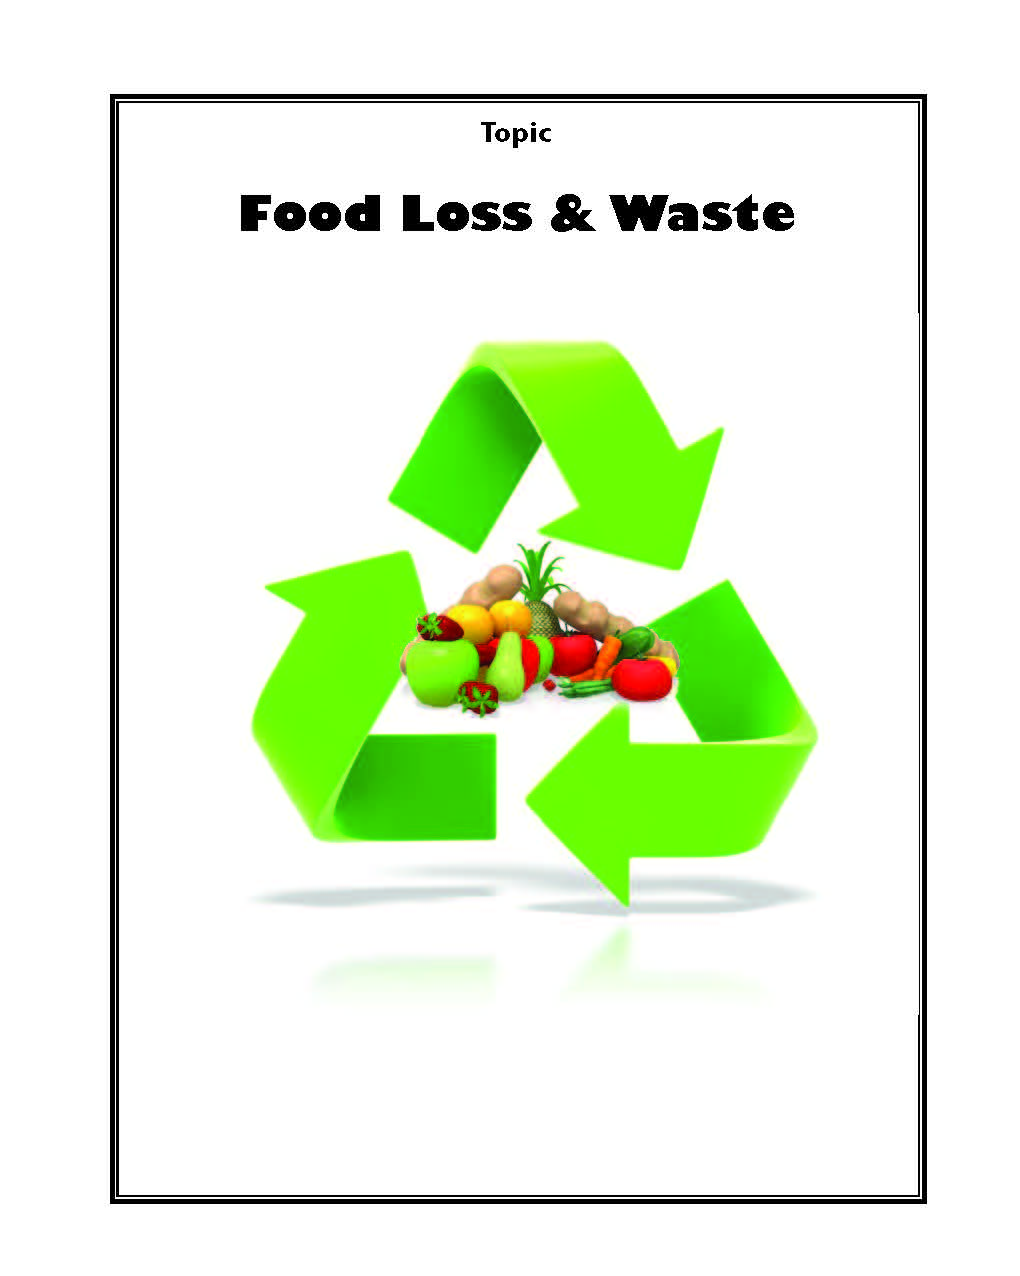 Food Loss & Waste